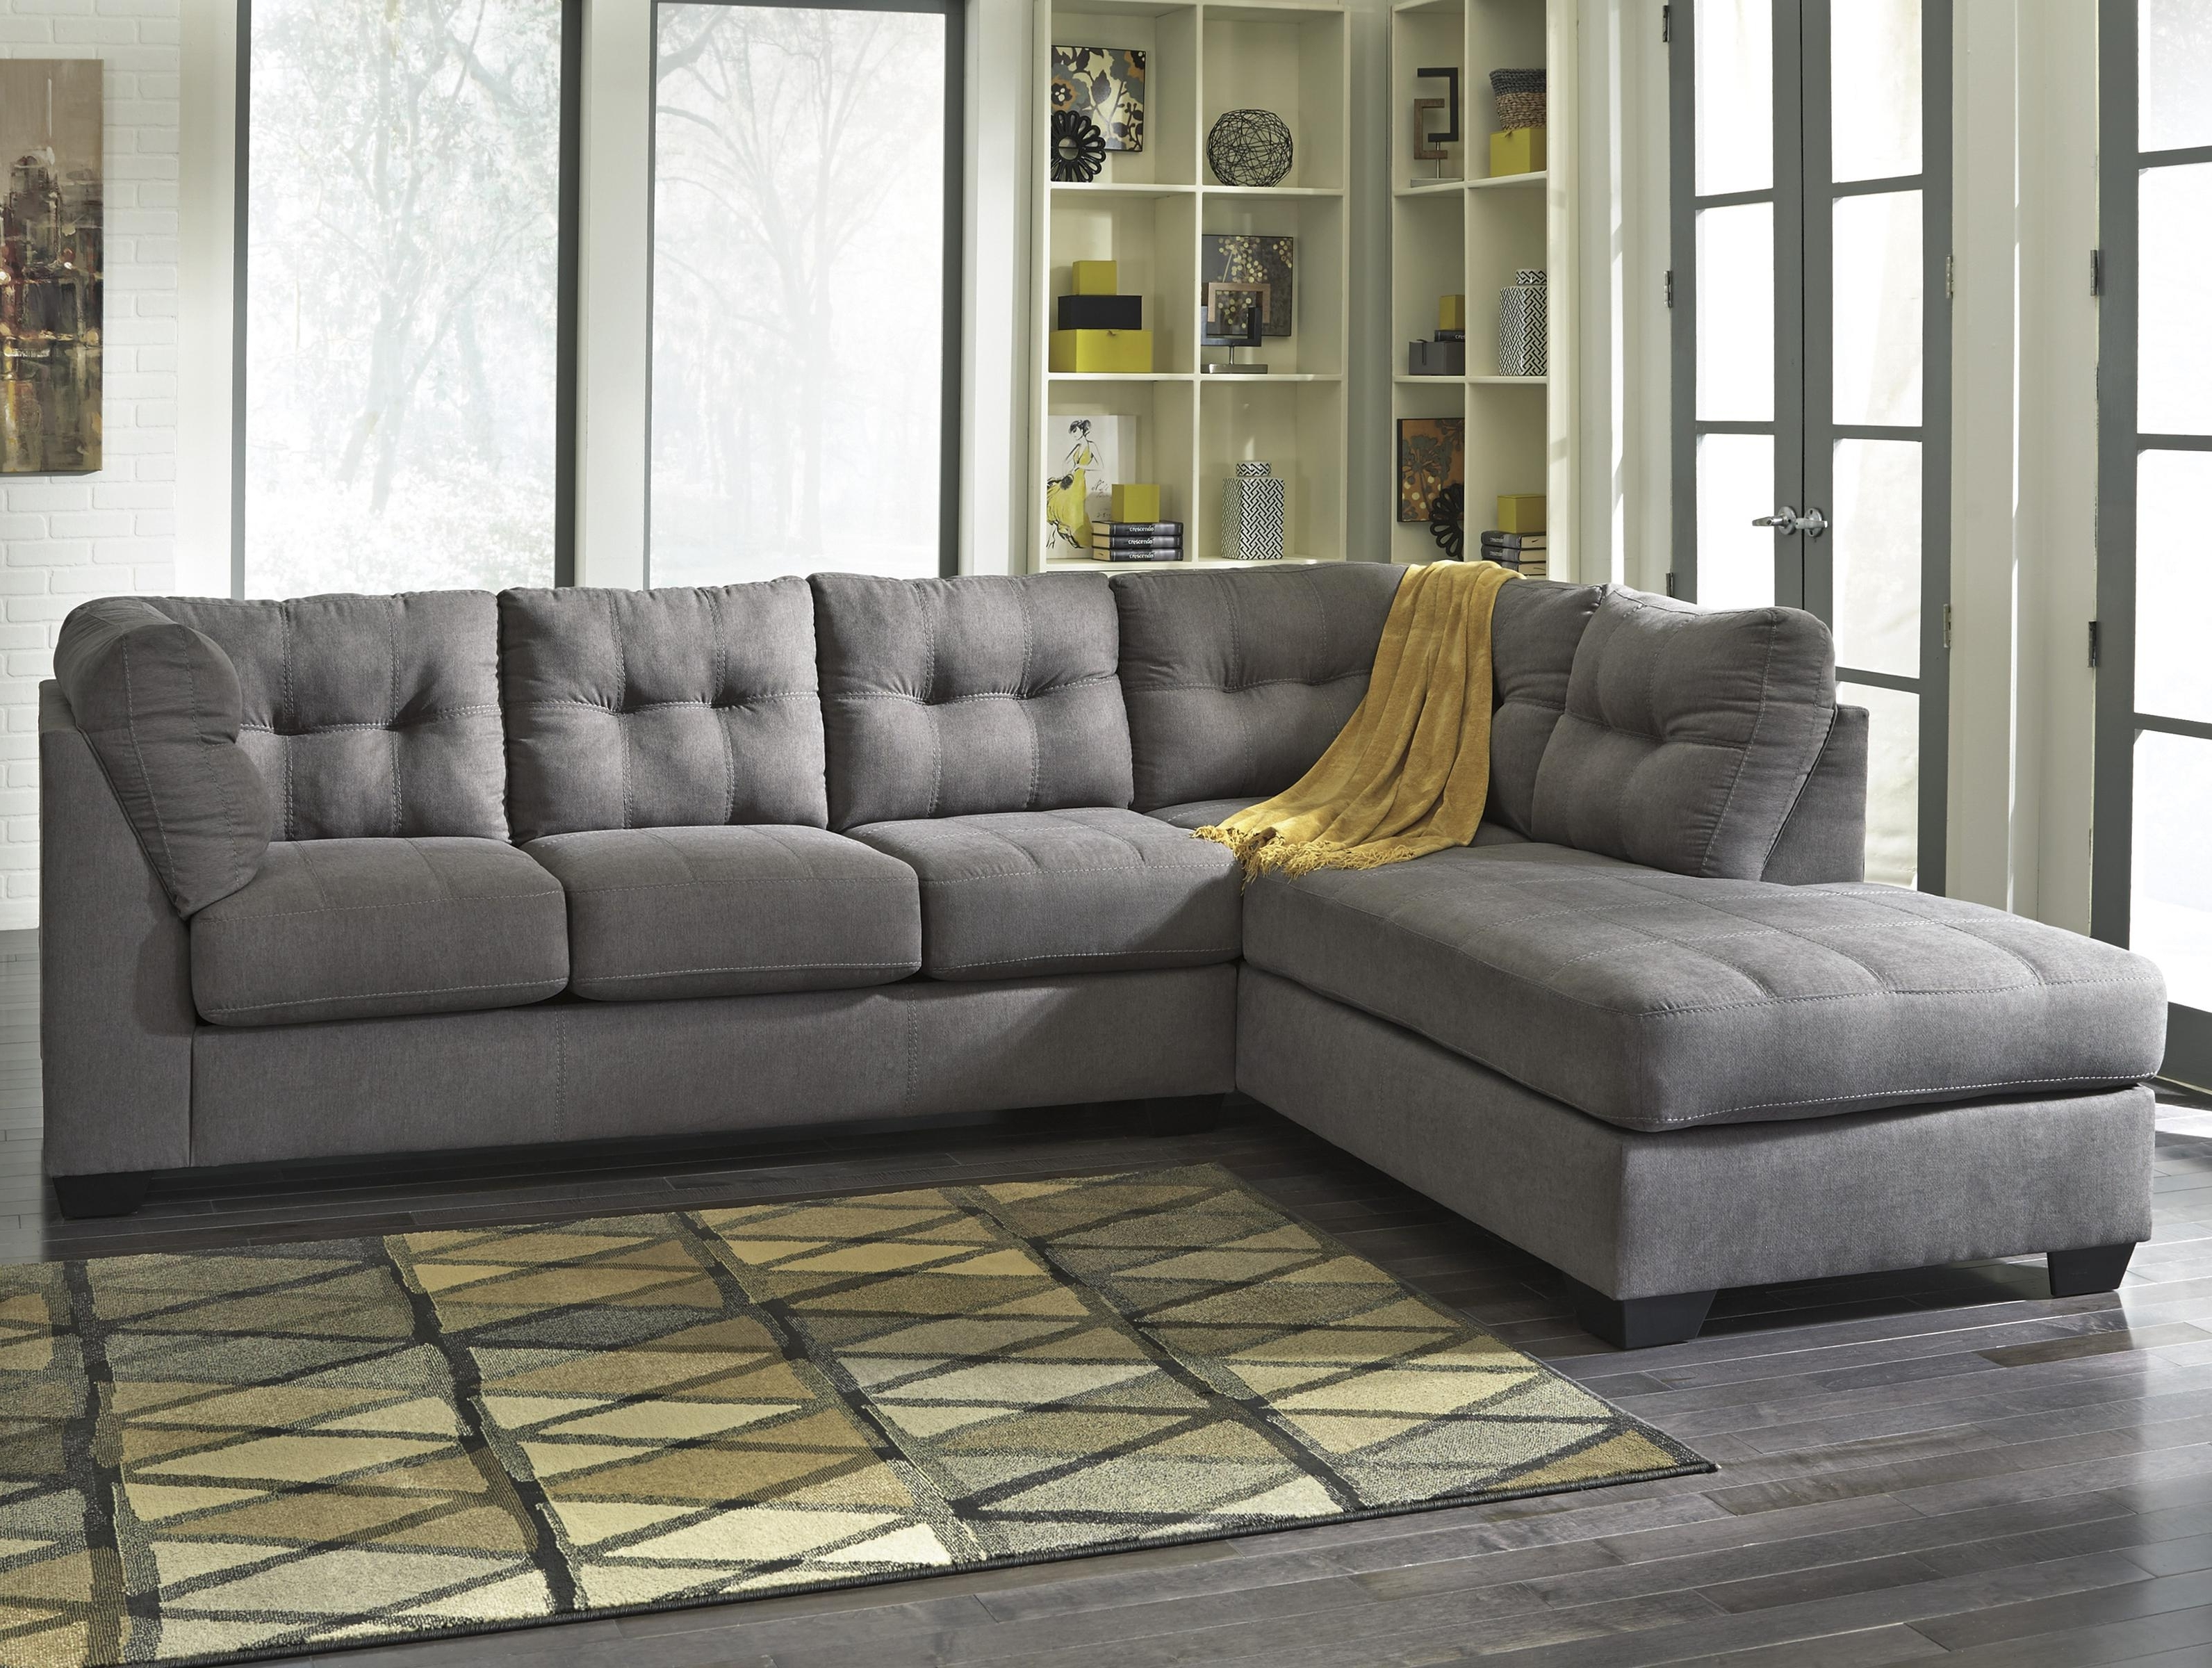 Best And Newest Benchcraft Maier – Charcoal 2 Piece Sectional With Left Chaise Within Sectional Sofas With 2 Chaises (View 3 of 20)